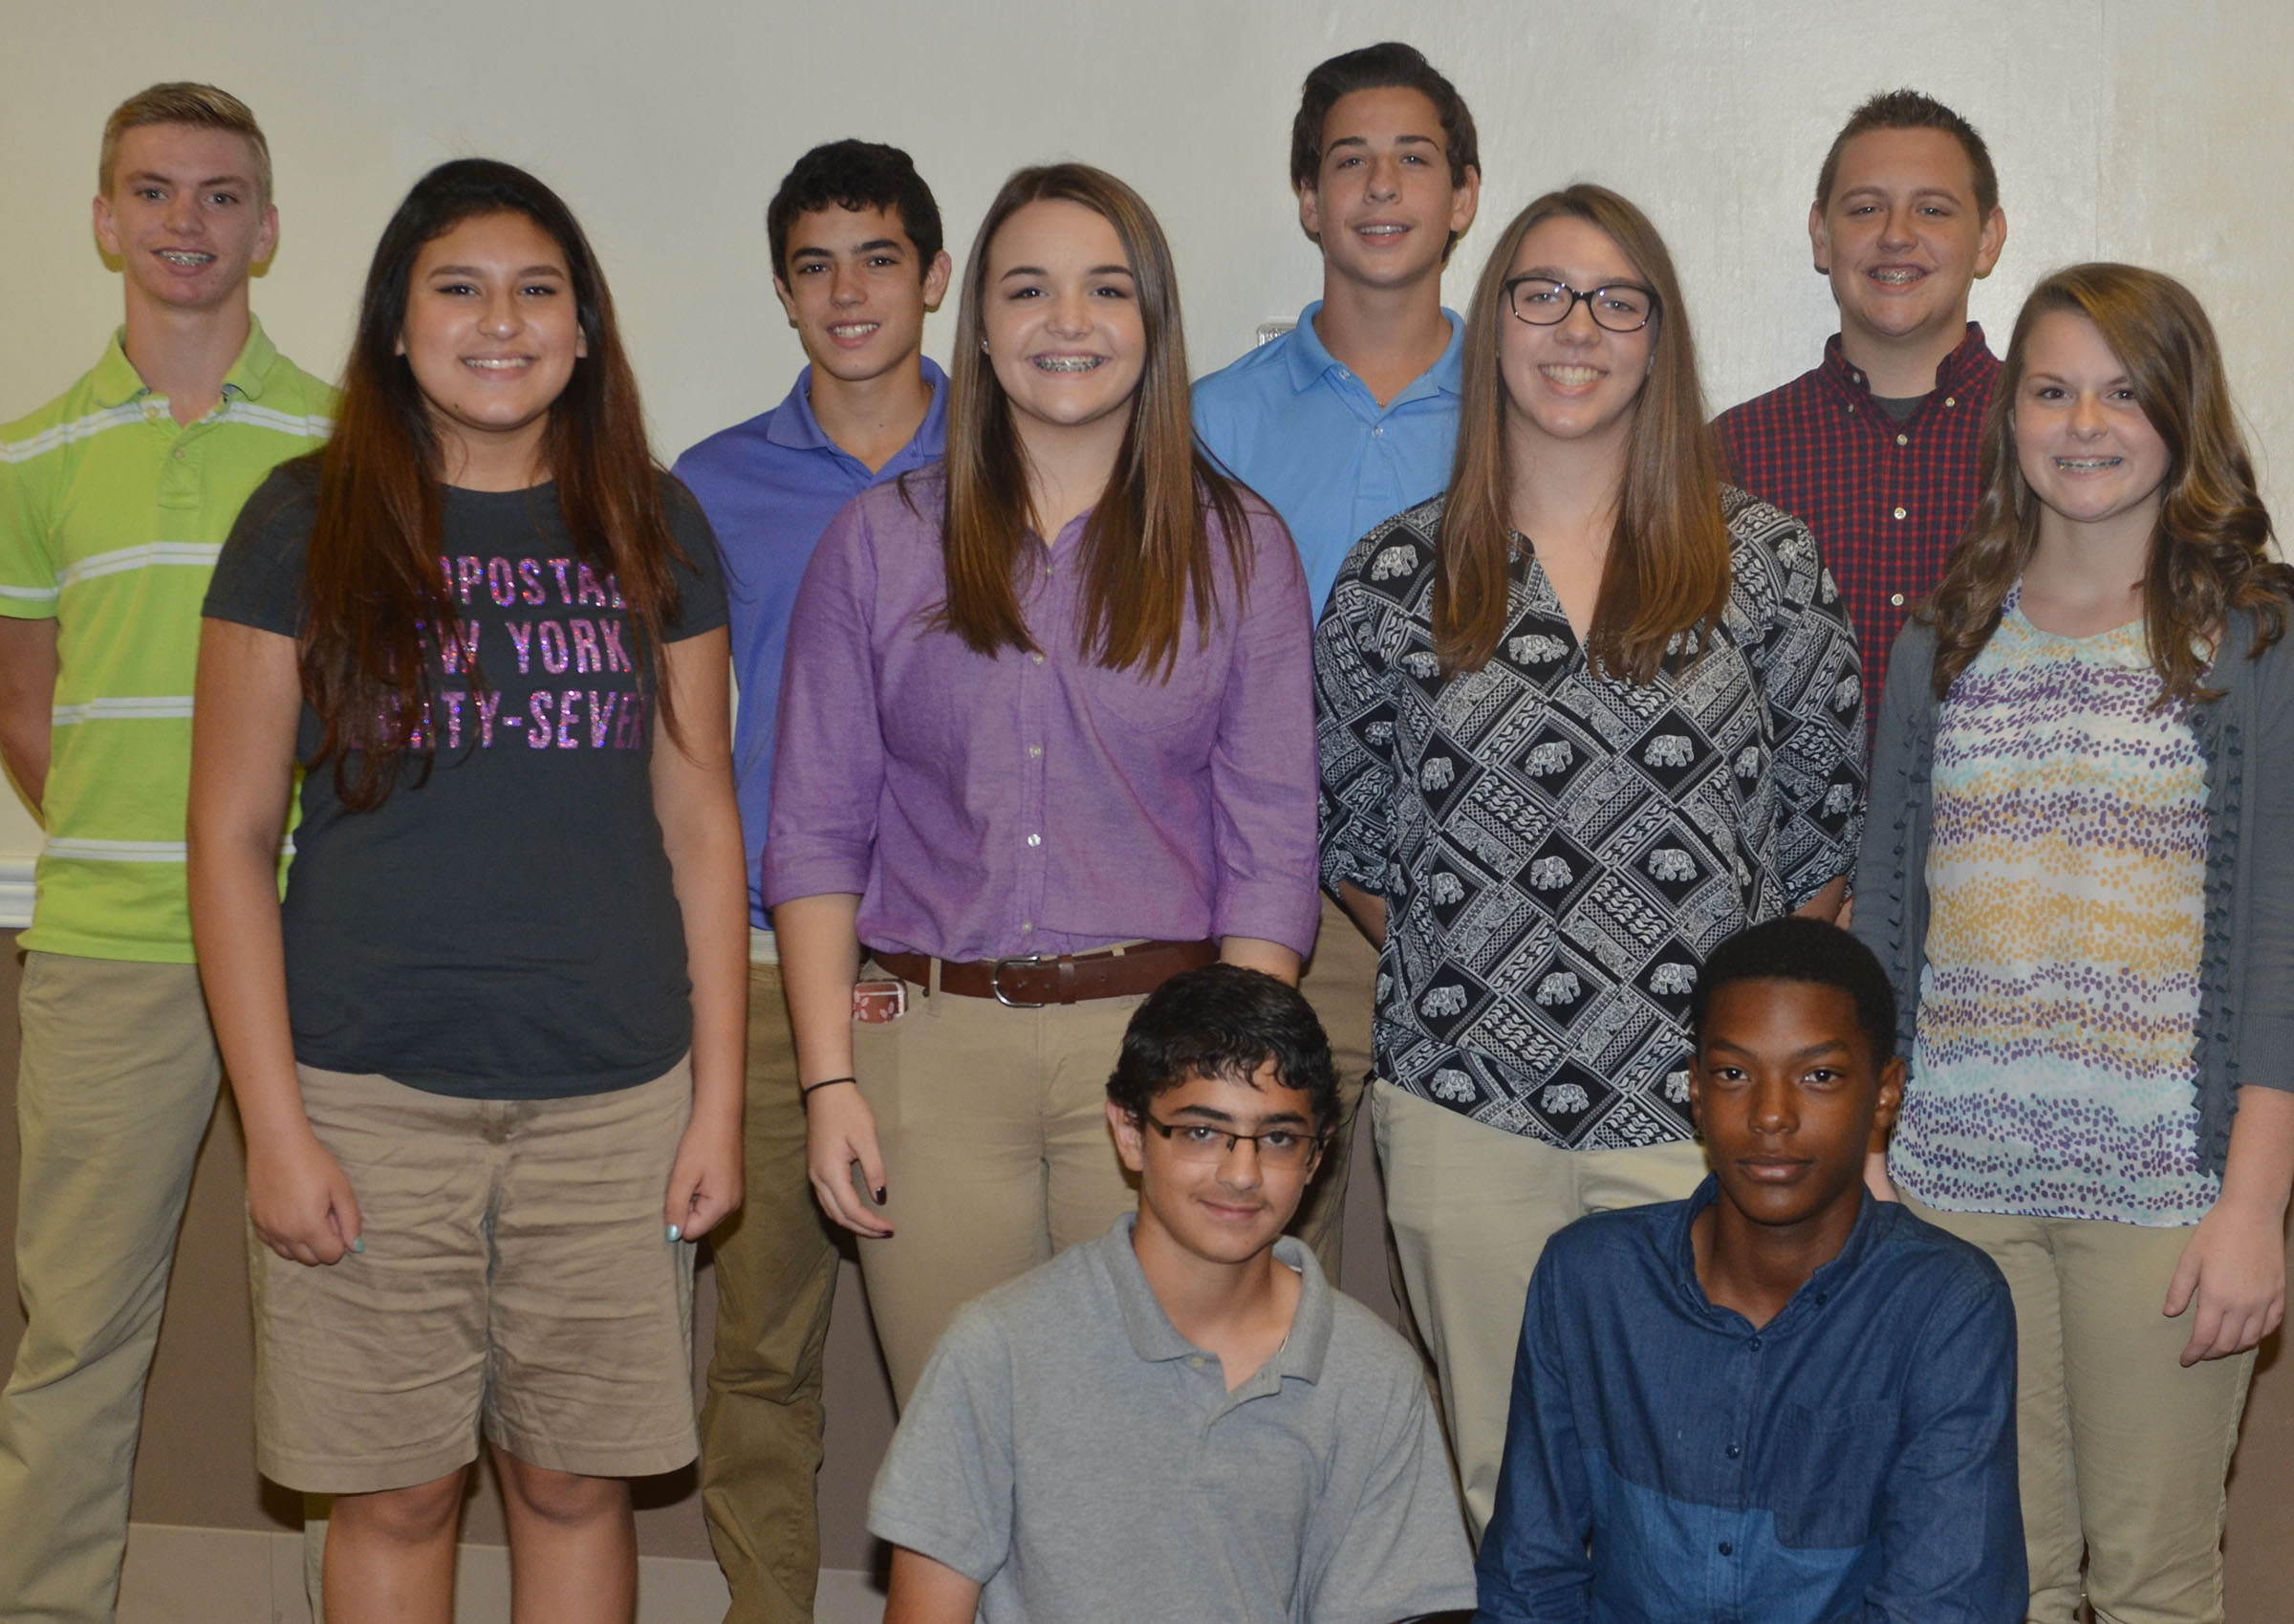 CMS eighth-graders participating in this year's Campbellsville University leadership program are, from left, front, Hassan Alabusalim and Zaquan Cowan. Second row, Ana Clara Moura, Kenzi Forbis, Abi Wiedewitsch and Taylor Knight. Back, Arren Hash, Kameron Smith, John Orberson and Jackson Antle. Clark Kidwell and Tristin Faulkner were unable to attend the orientation event.